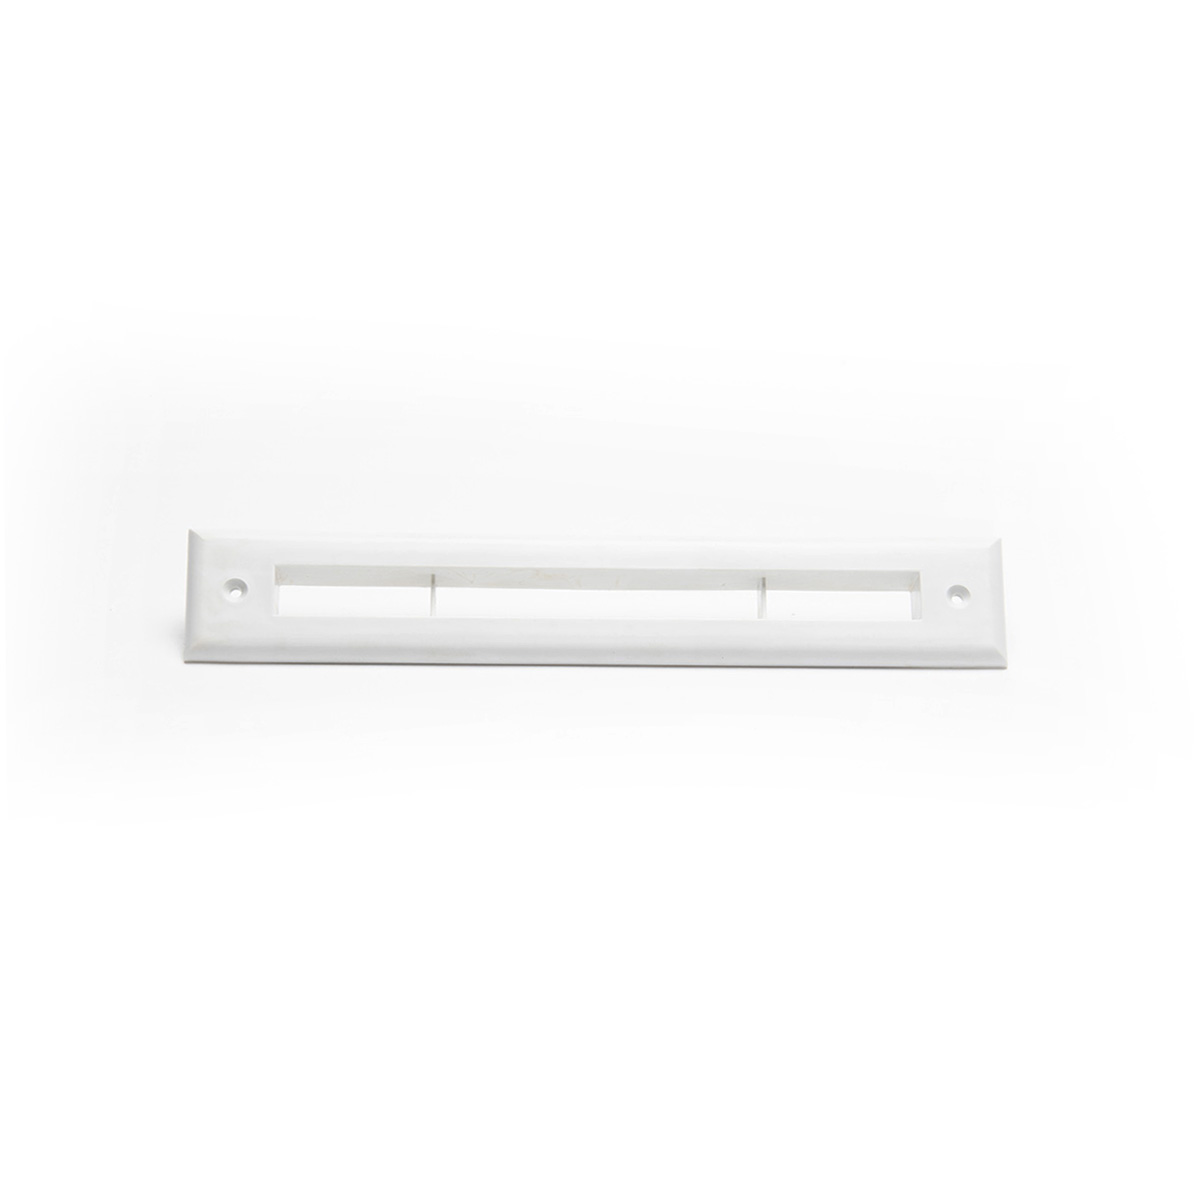 Slotted Outlet Face Plate, White, UPC-67/68